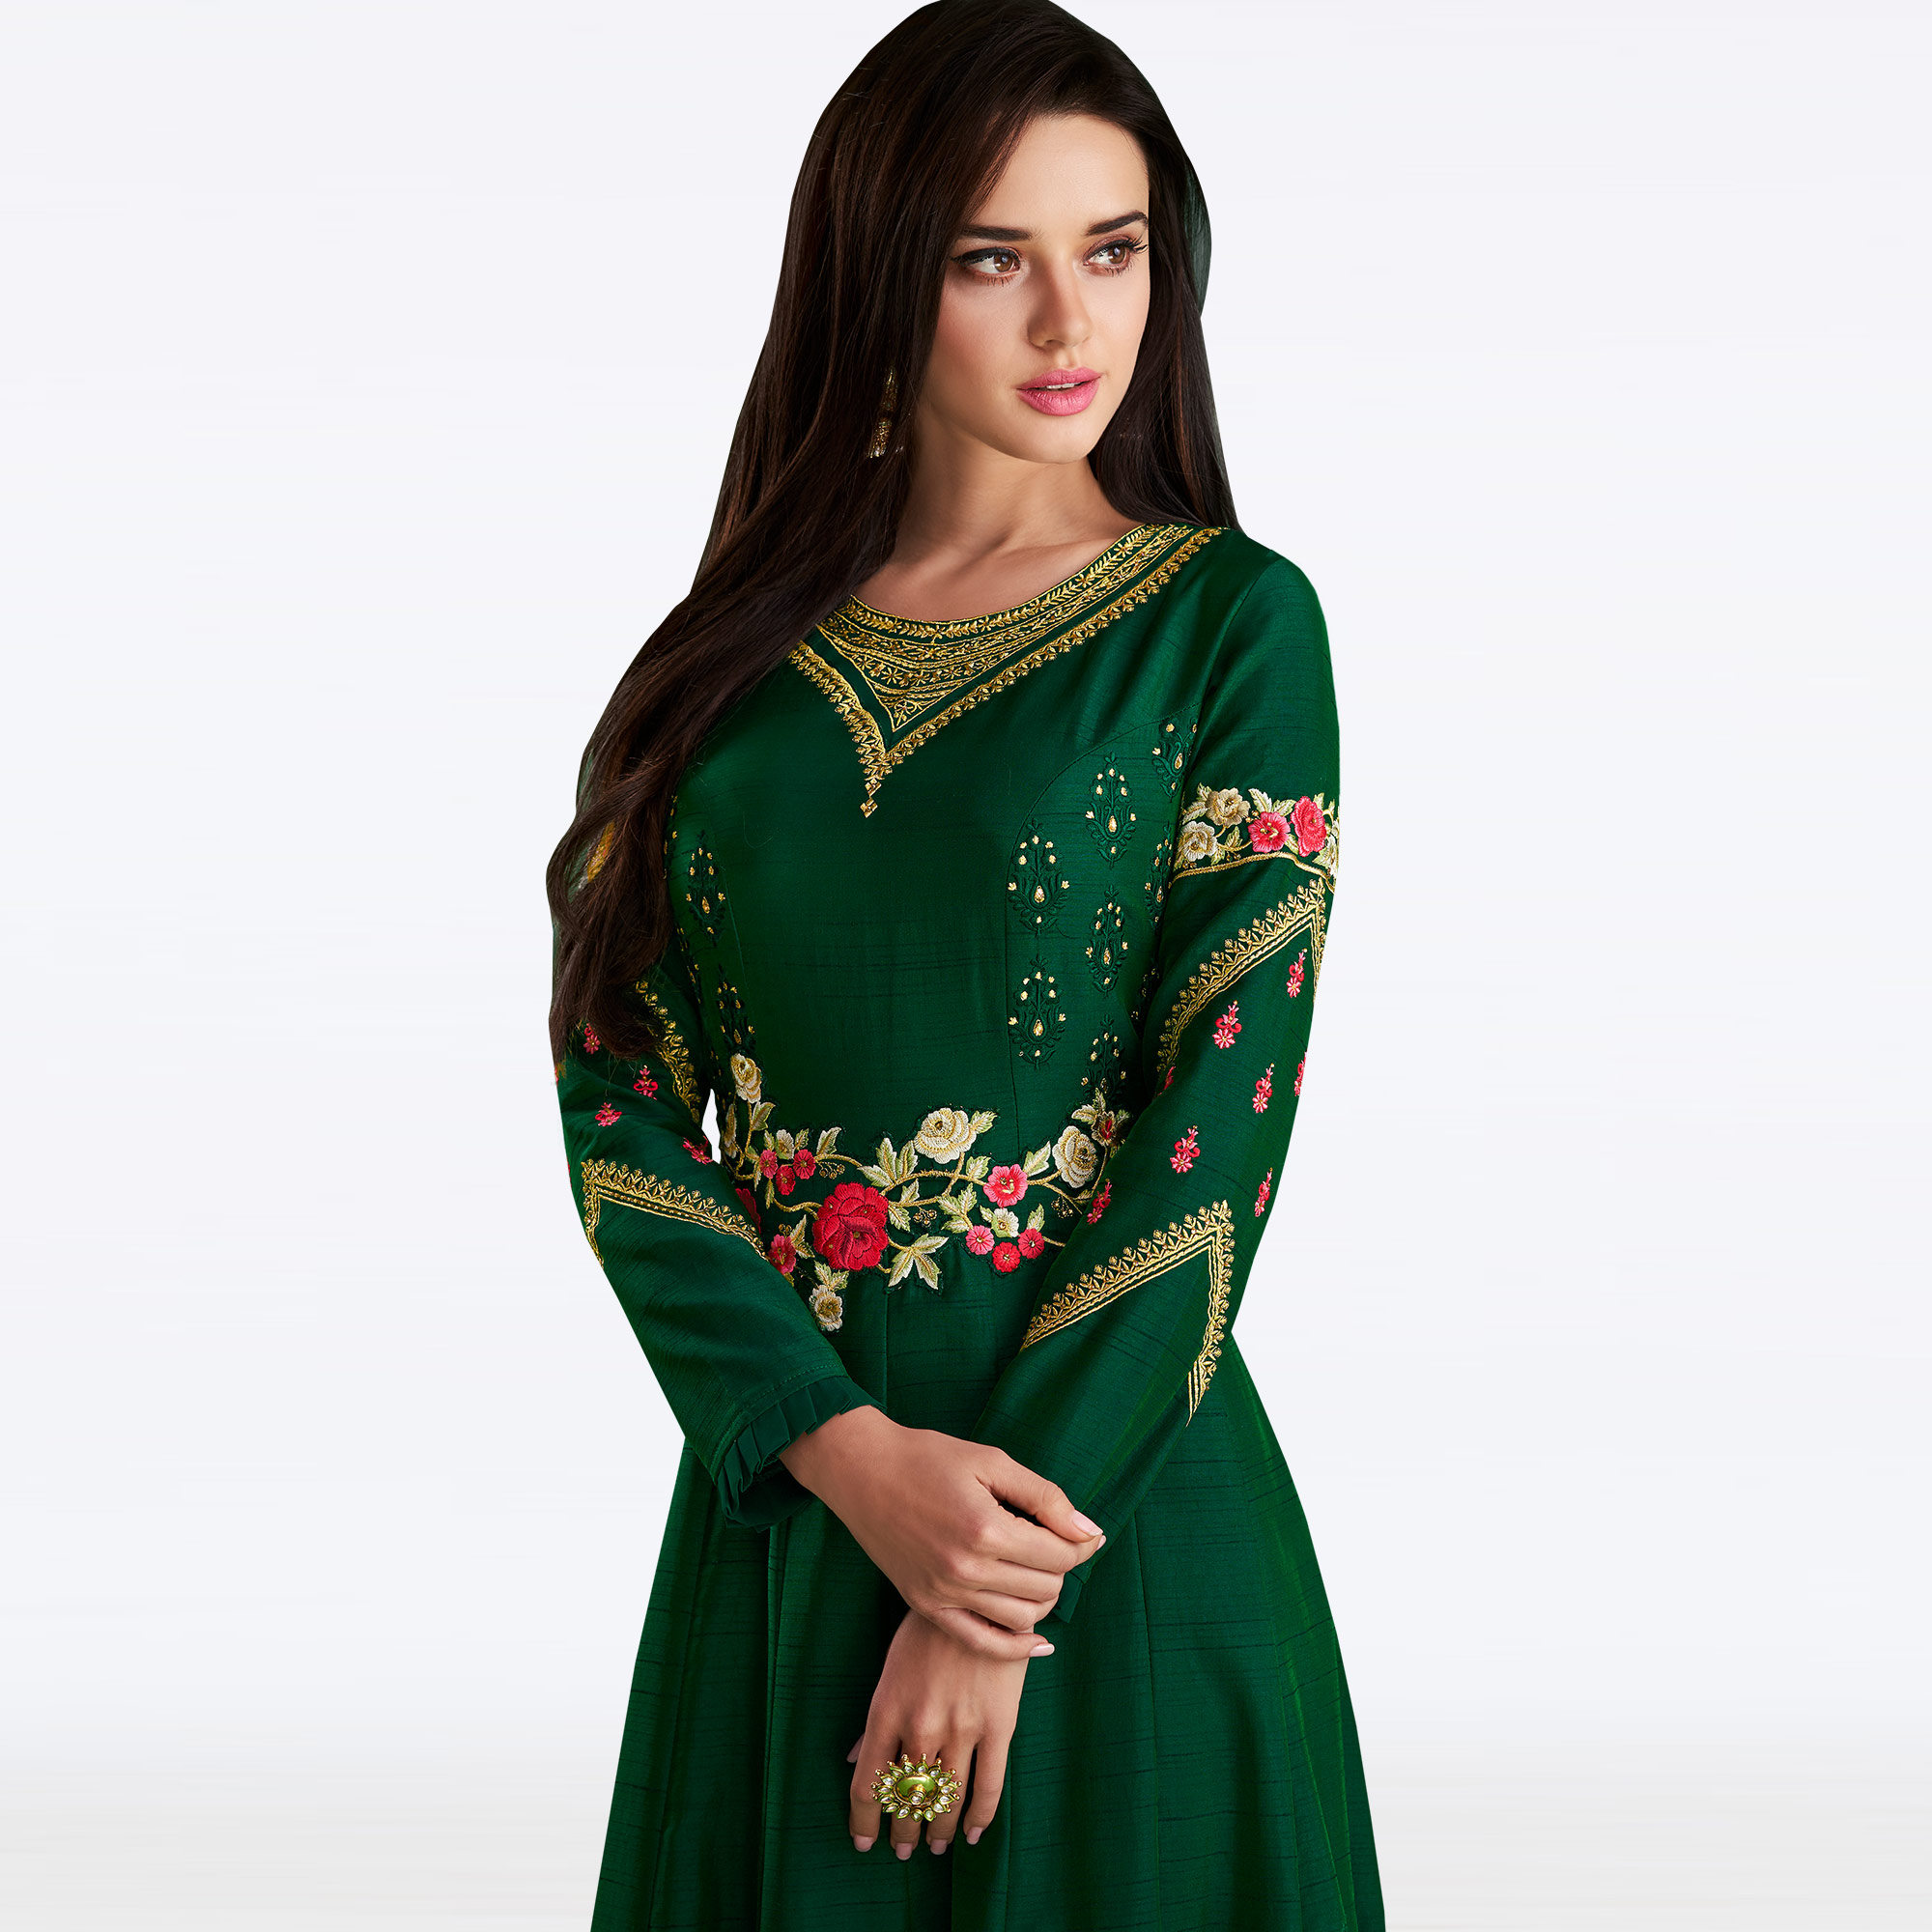 Eye-catching Dark Green Colored Partywear Embroidered Linen-Satin Gown